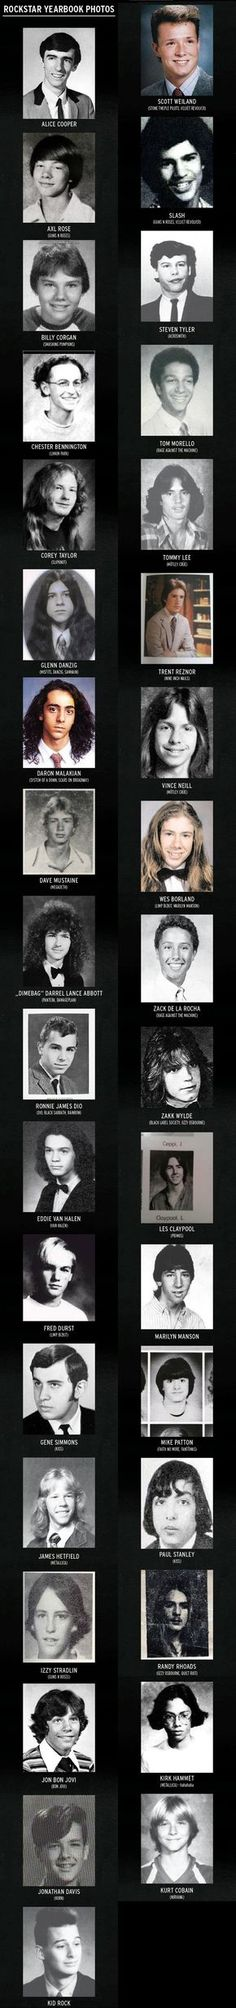 Rockstar Yearbook Photos, did Paul Stanley EVER have bad eyebrows?